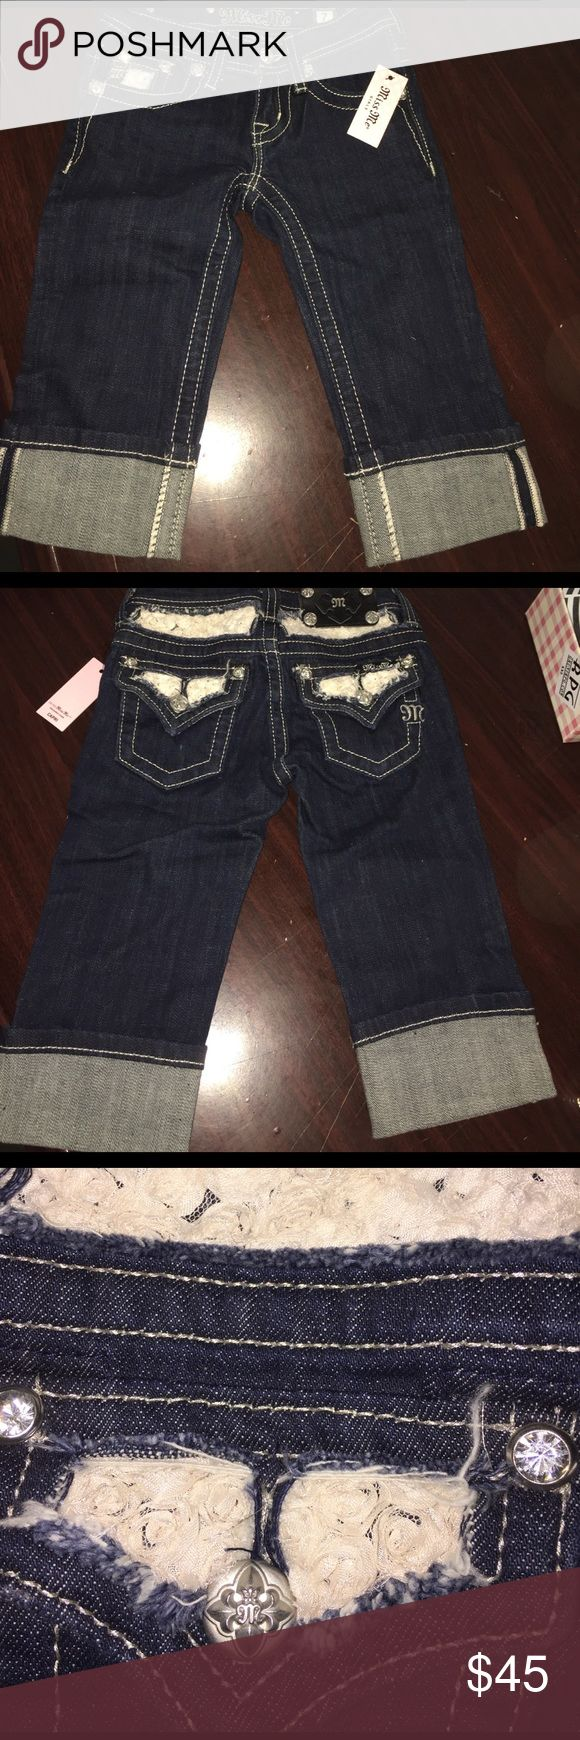 Miss Me Kids Capri. Brand New with tags Miss Me Capri Kids Size 7.  No Trade No Offers price Set and Firm. Miss Me Bottoms Jeans